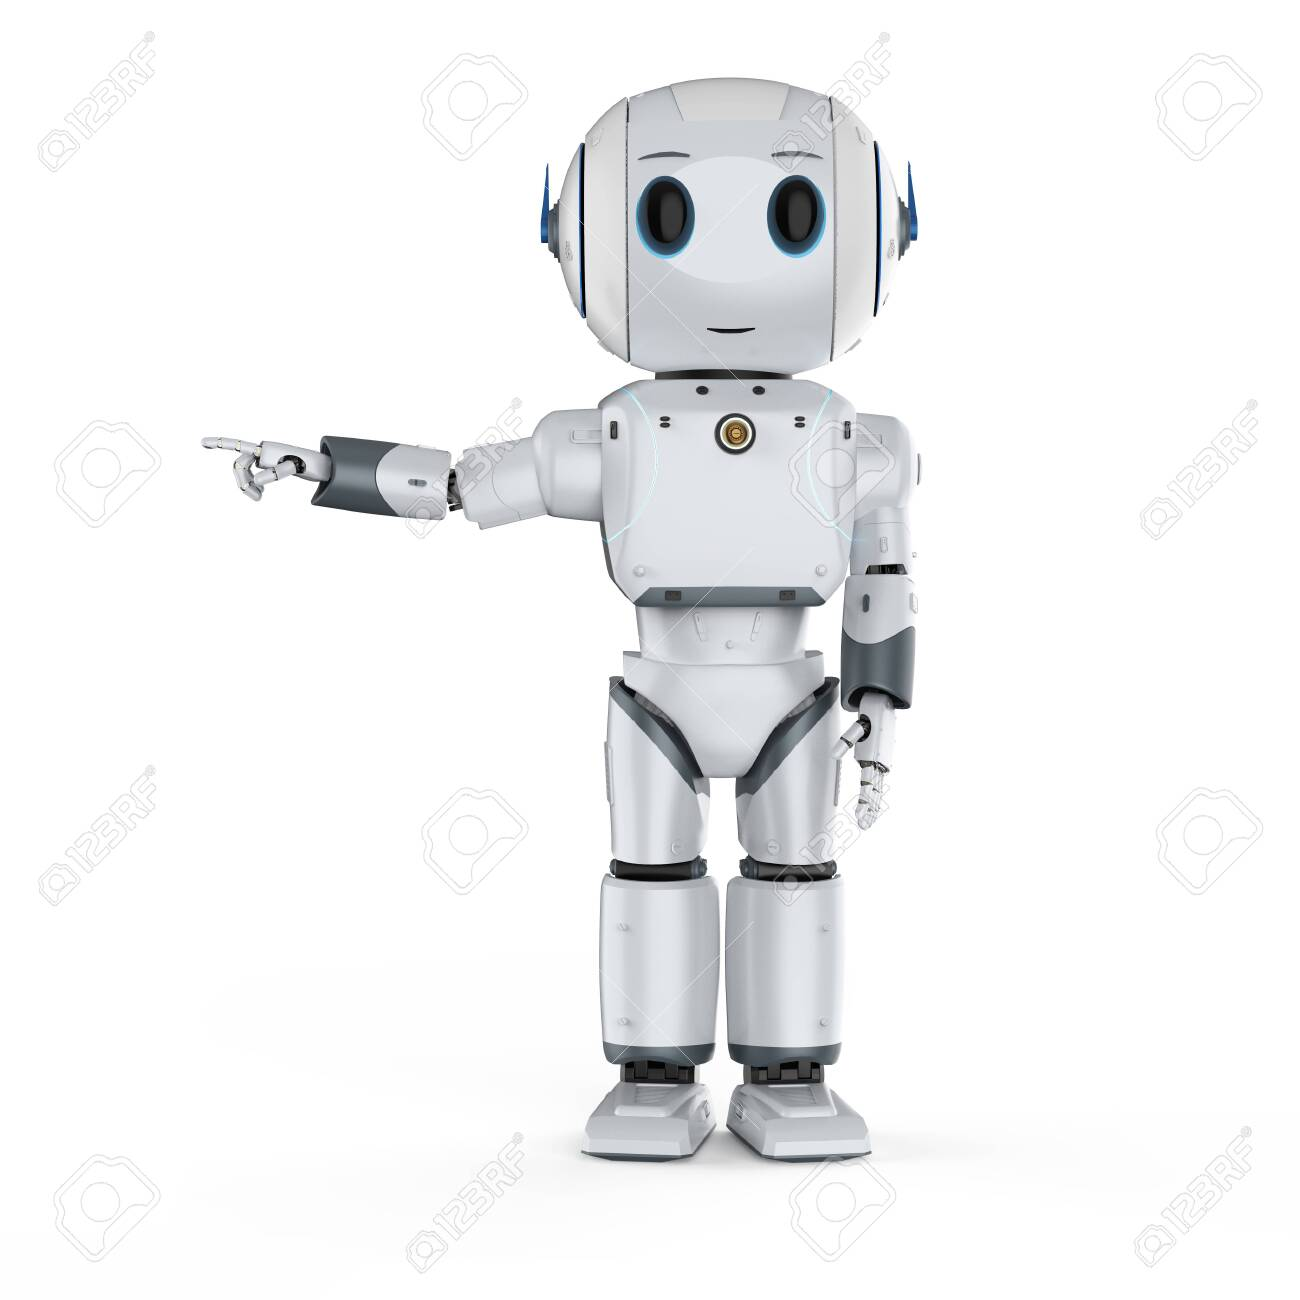 3d rendering cute artificial intelligence robot finger point with cartoon character - 156046015